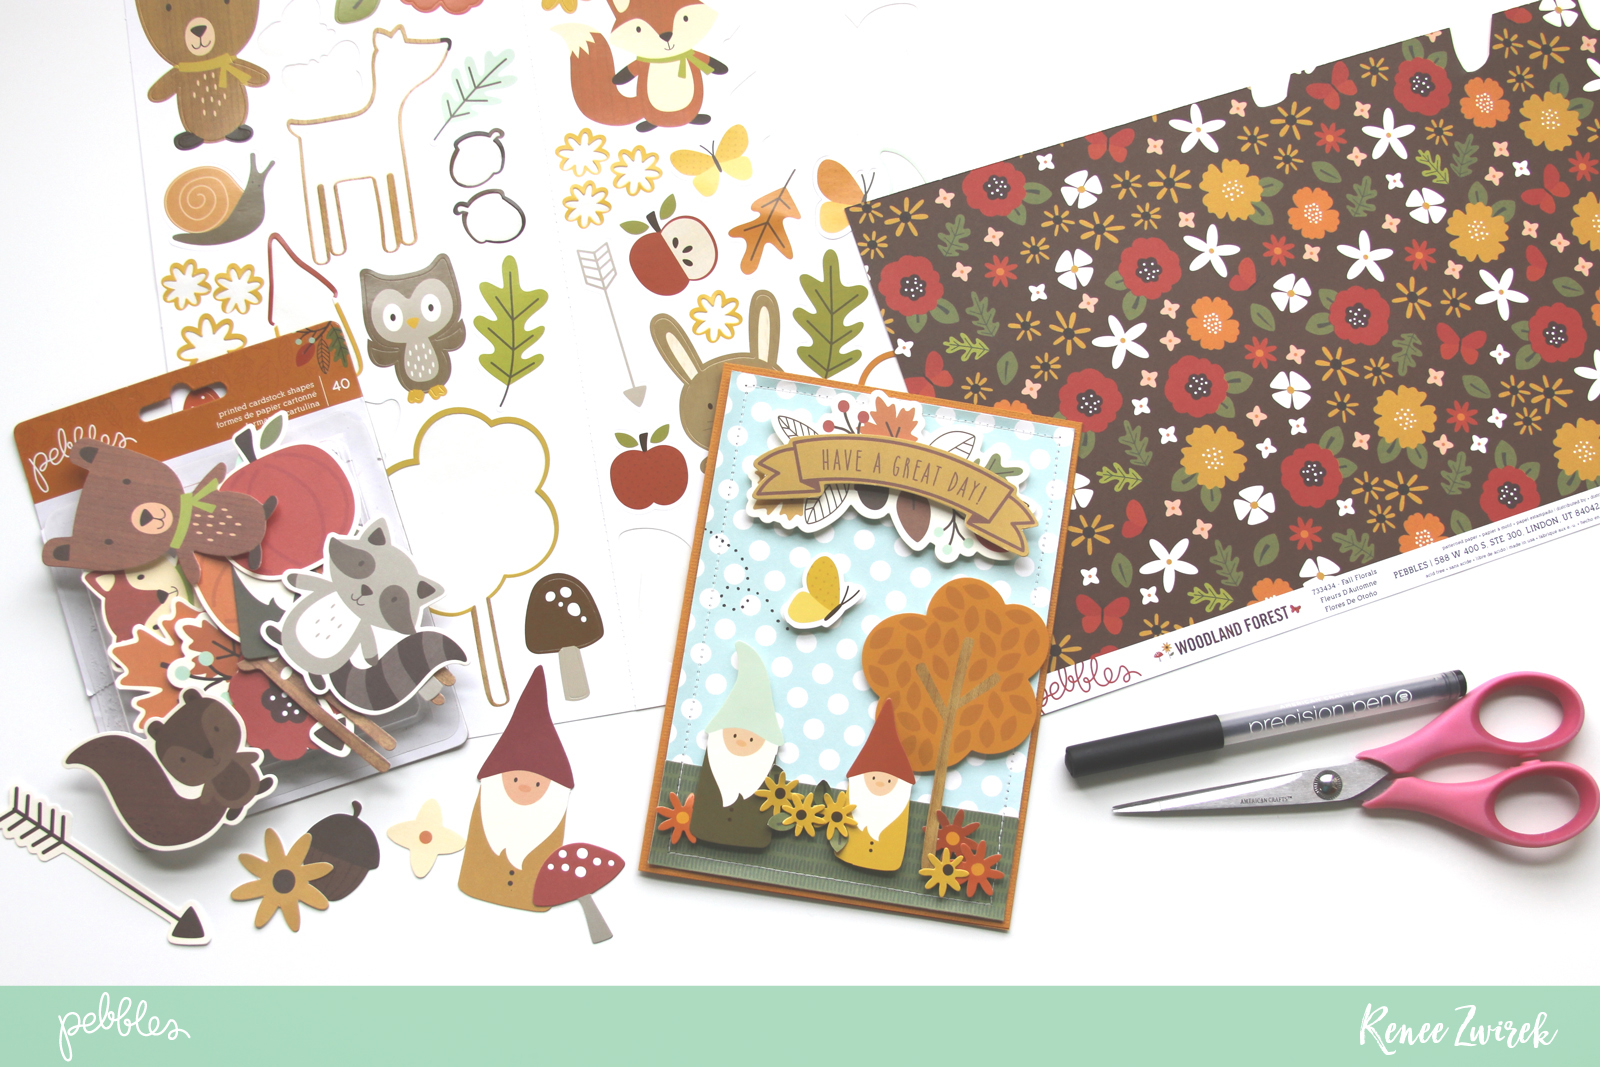 Get ready and organized for the new year with a fresh stash of Greeting Cards created for family and friends by @reneezwirek using the #WoodlandForest collection by @pebblesinc